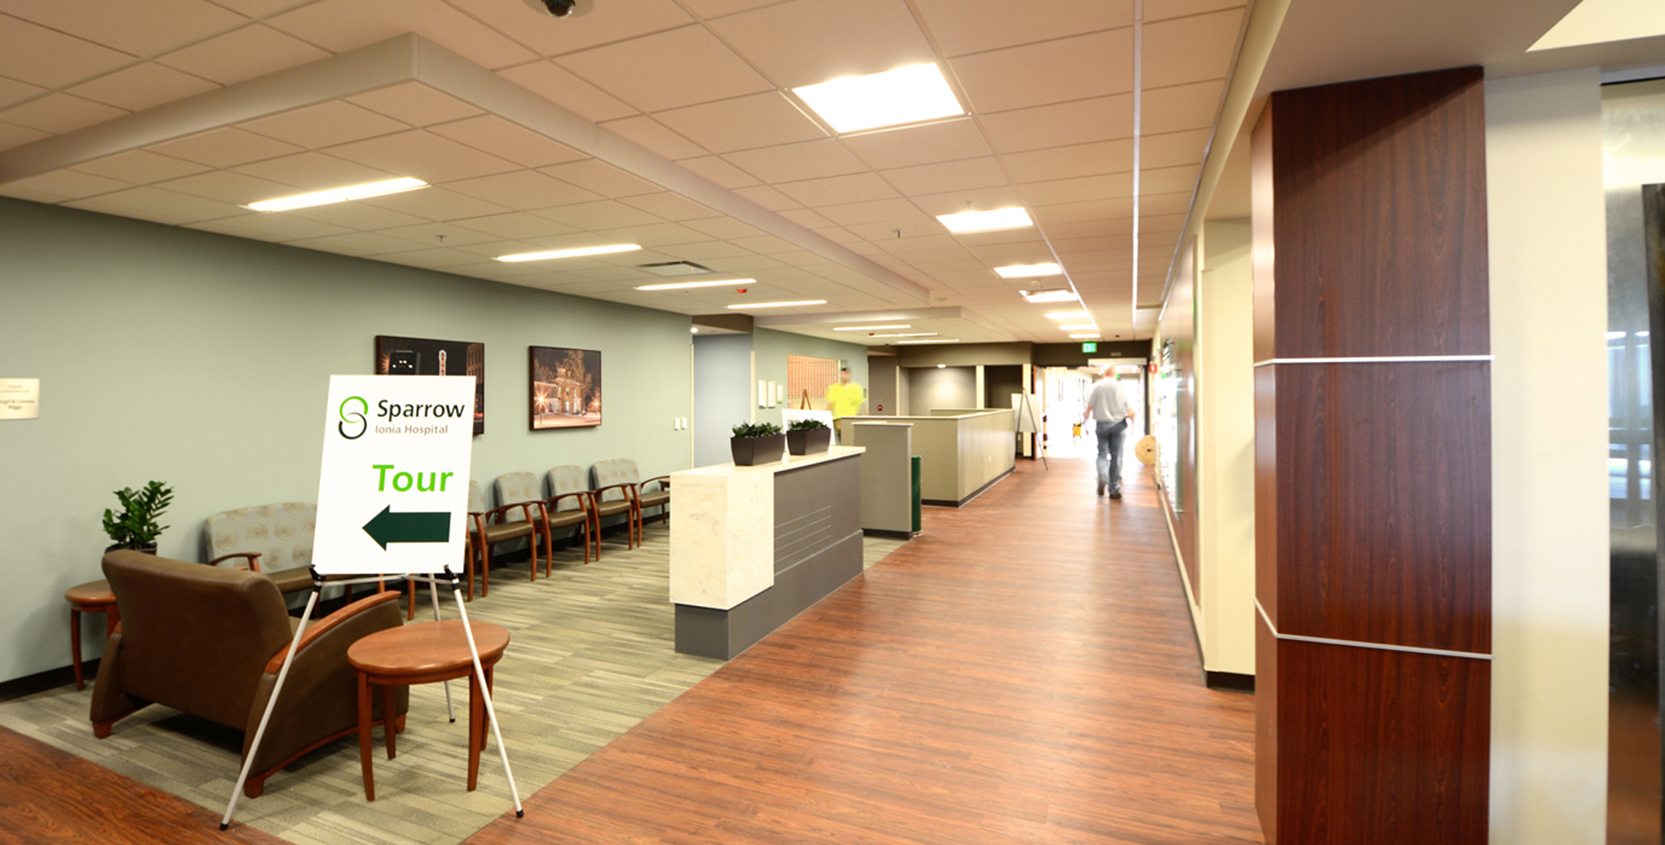 Sparrow-Ionia-Replacement-Hospital-Lobby-2-1665x845